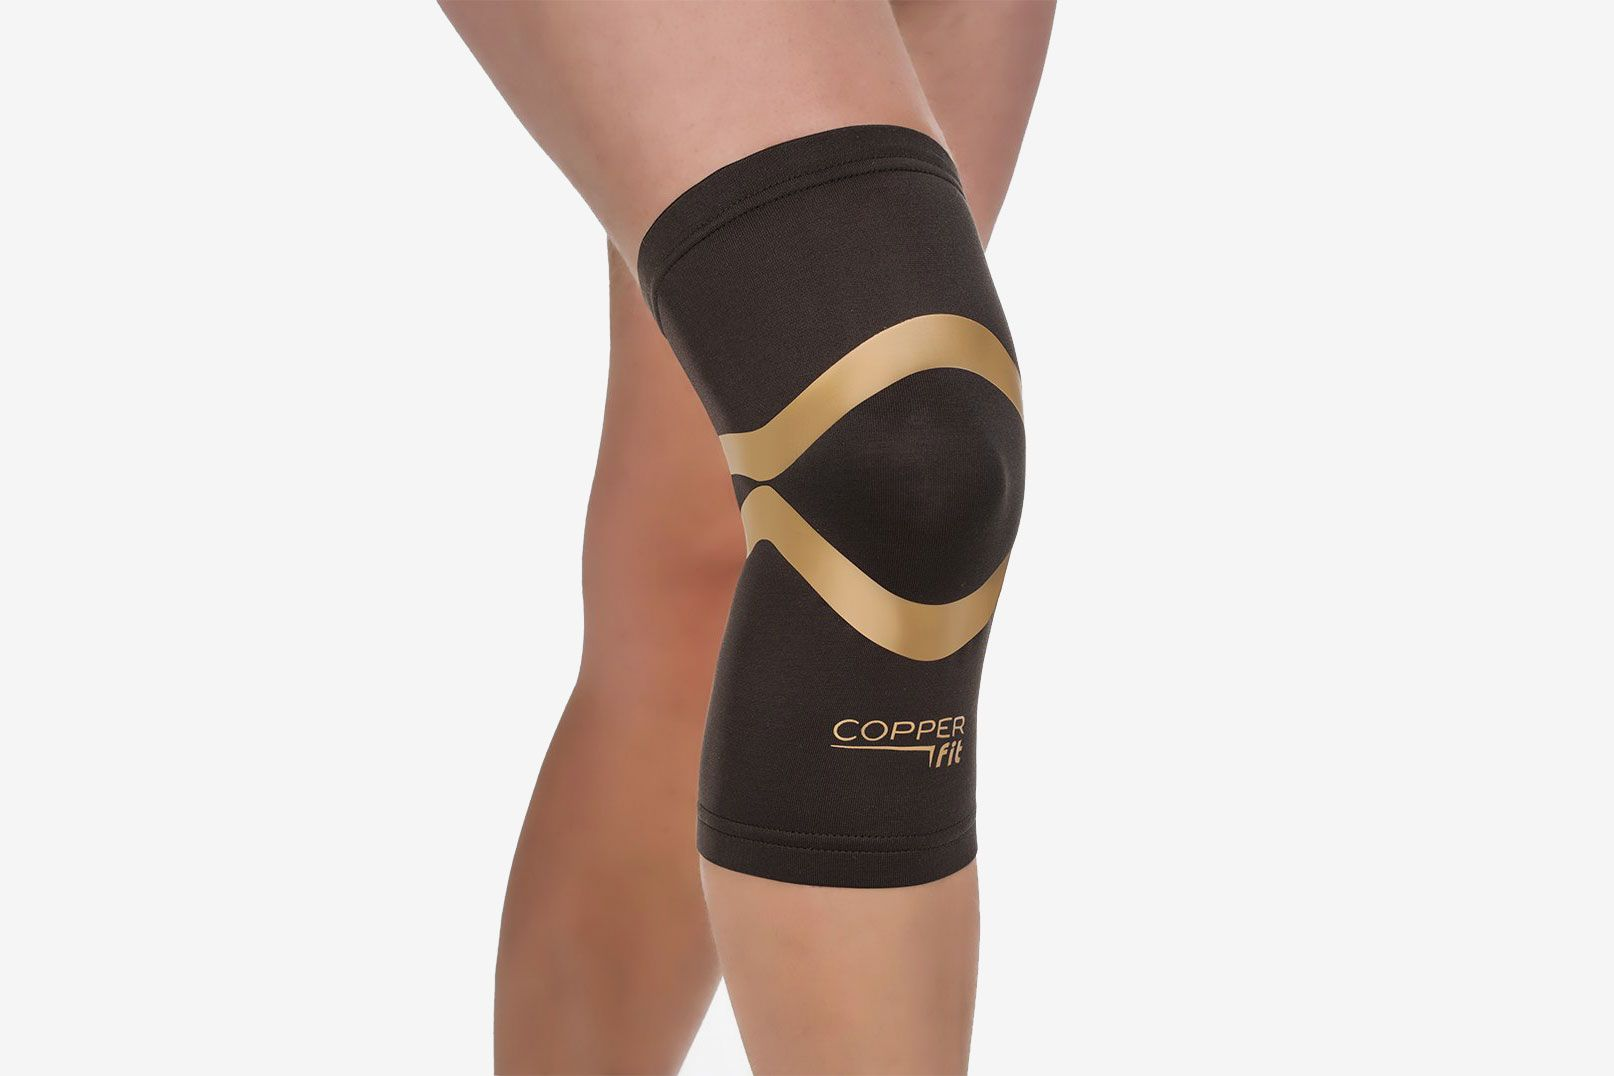 Copper Fit Pro Series Compression Knee Sleeve